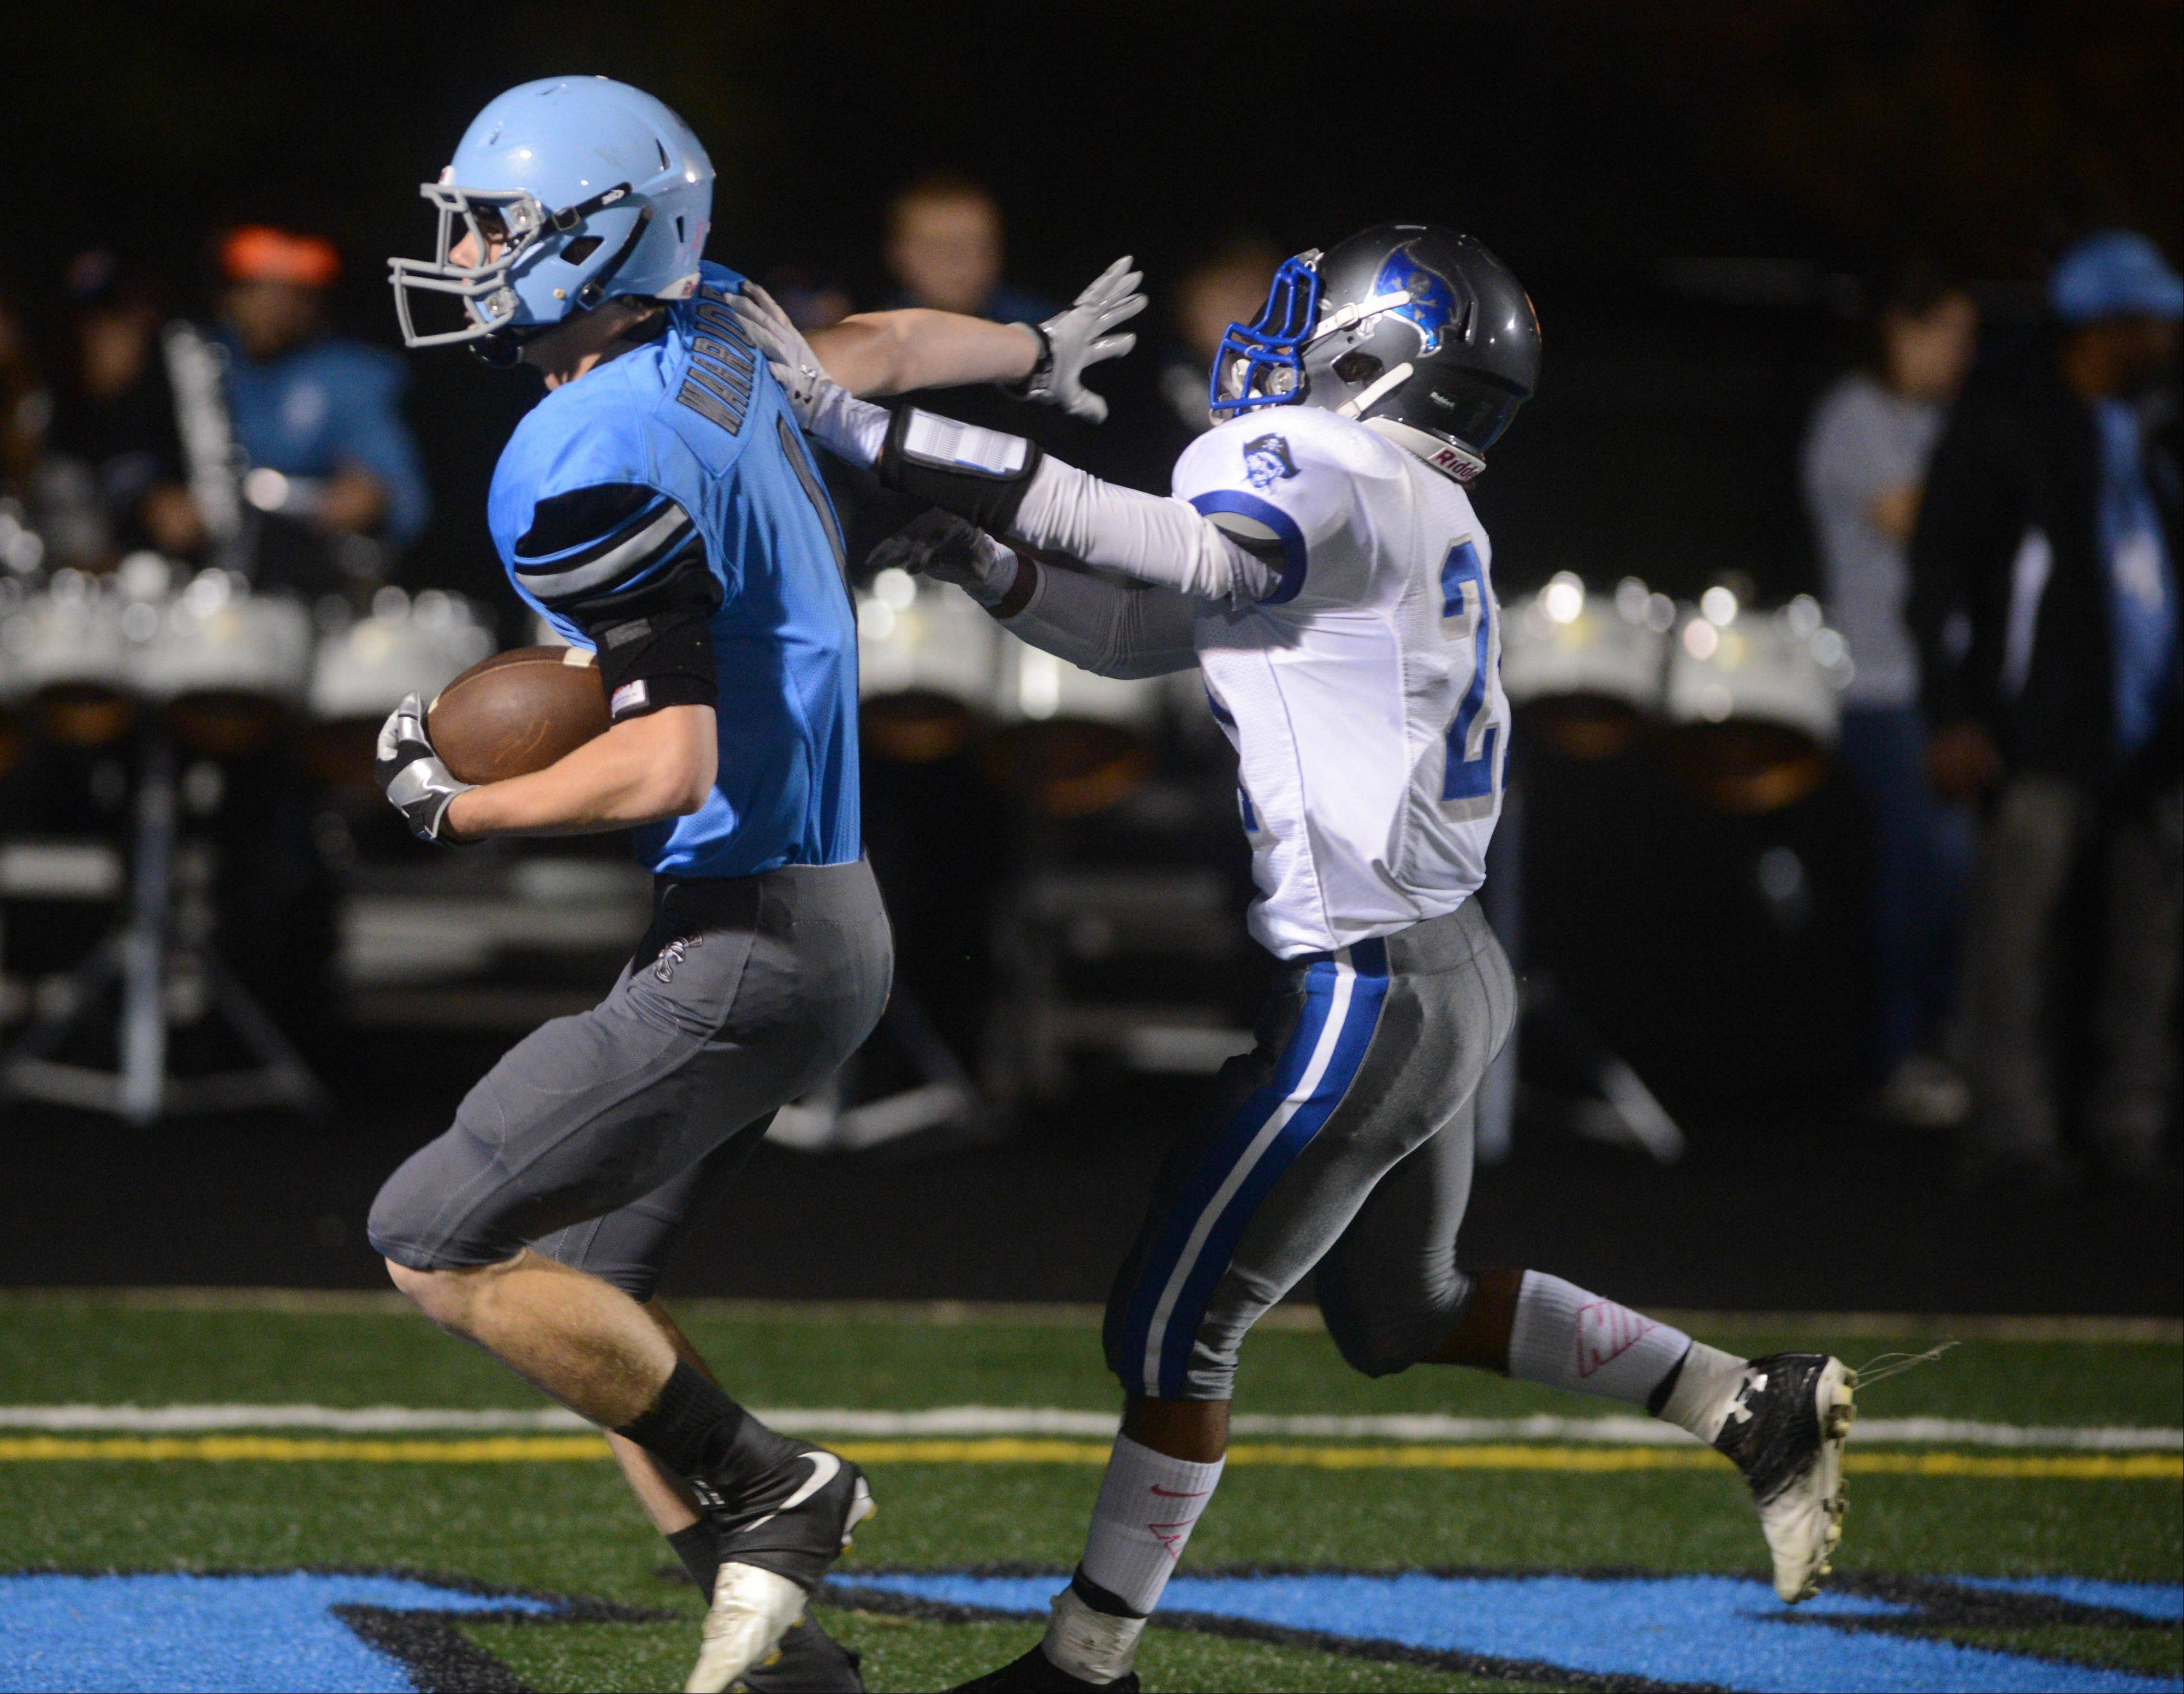 Hayden Adams of Willowbrook,left, and Kameron Irvin of Proviso East run during the Proviso East at Willowbrook football game in Willowbrook Friday.